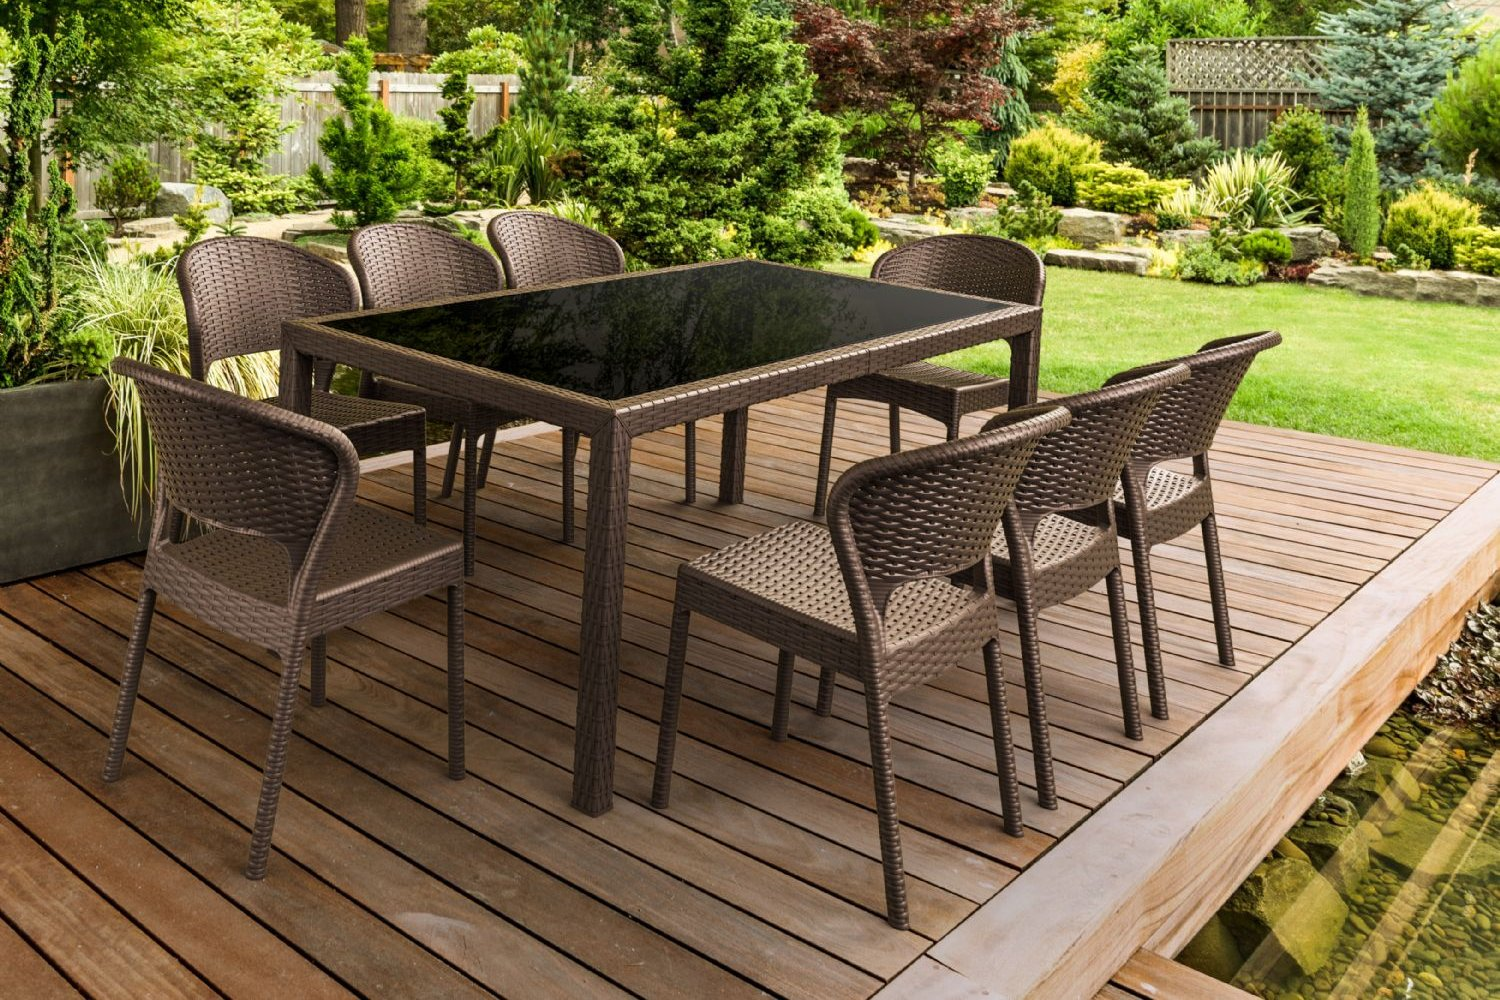 Daytona Glass Top Rectangle Dining Set 9 Piece with Brown ISP8185S-BR - 1